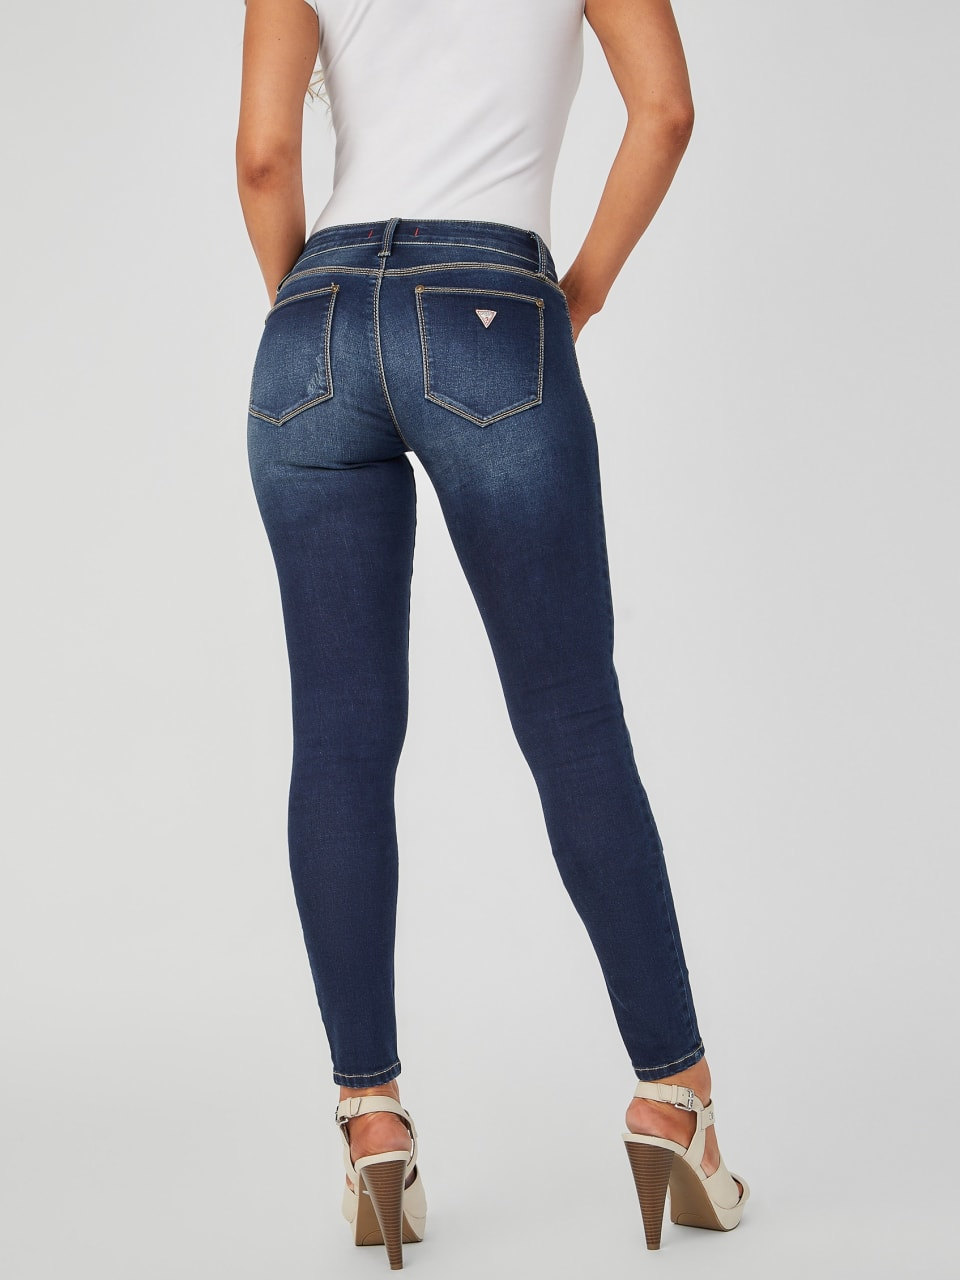 GUESS-Factory-Women-039-s-Sienna-Distressed-Curvy-Skinny-Jeans thumbnail 8